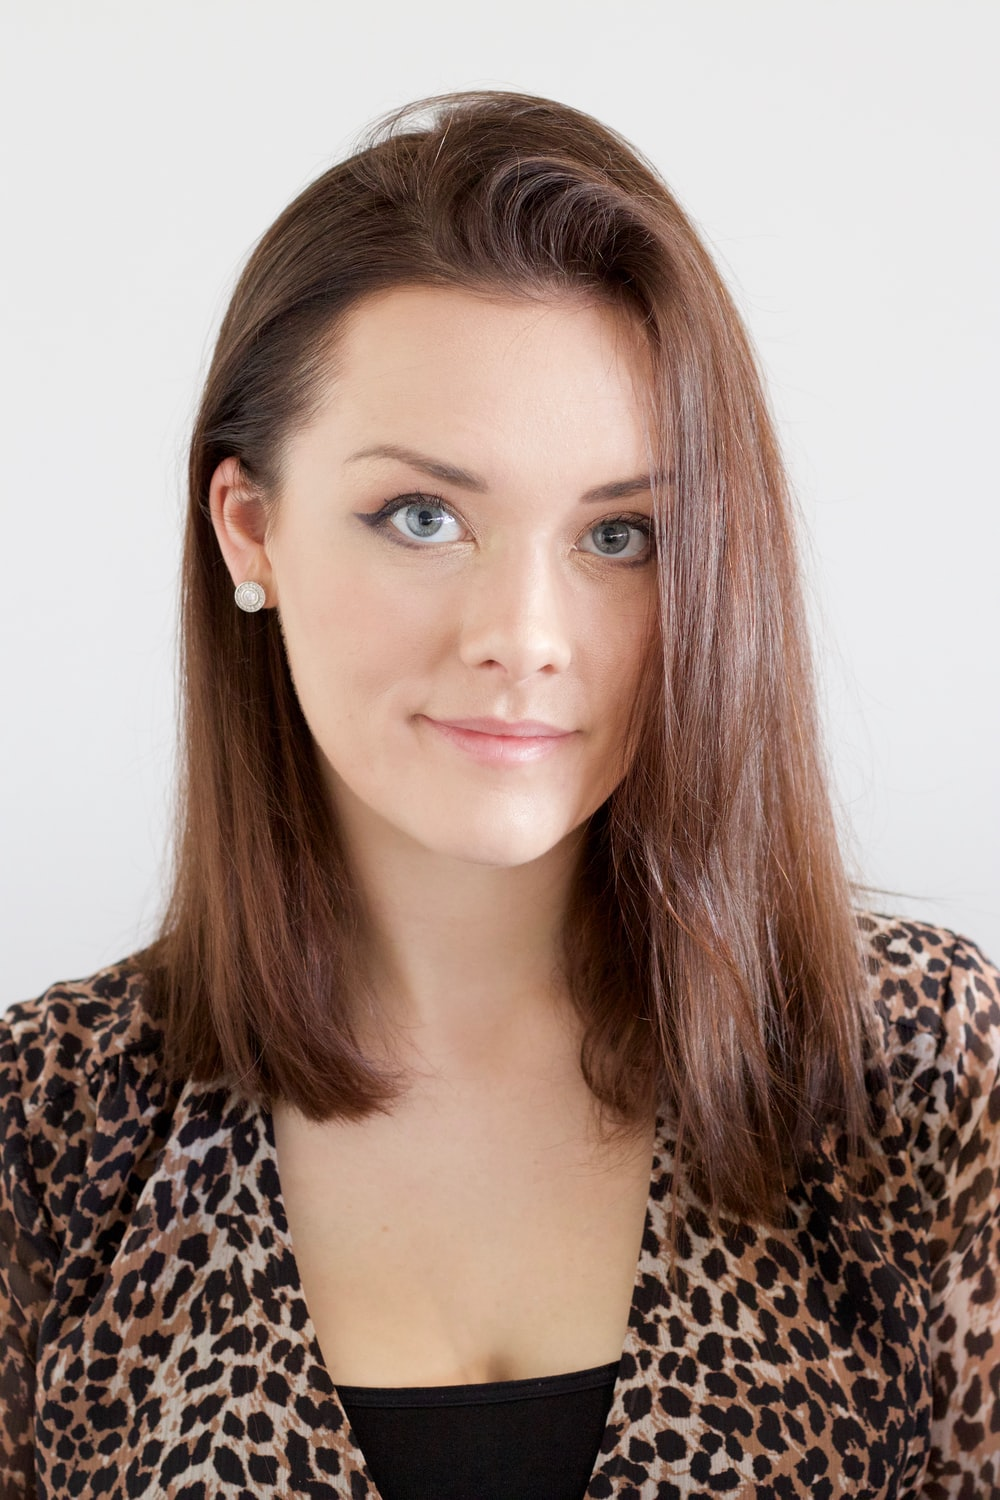 woman wearing brown and black leopard top